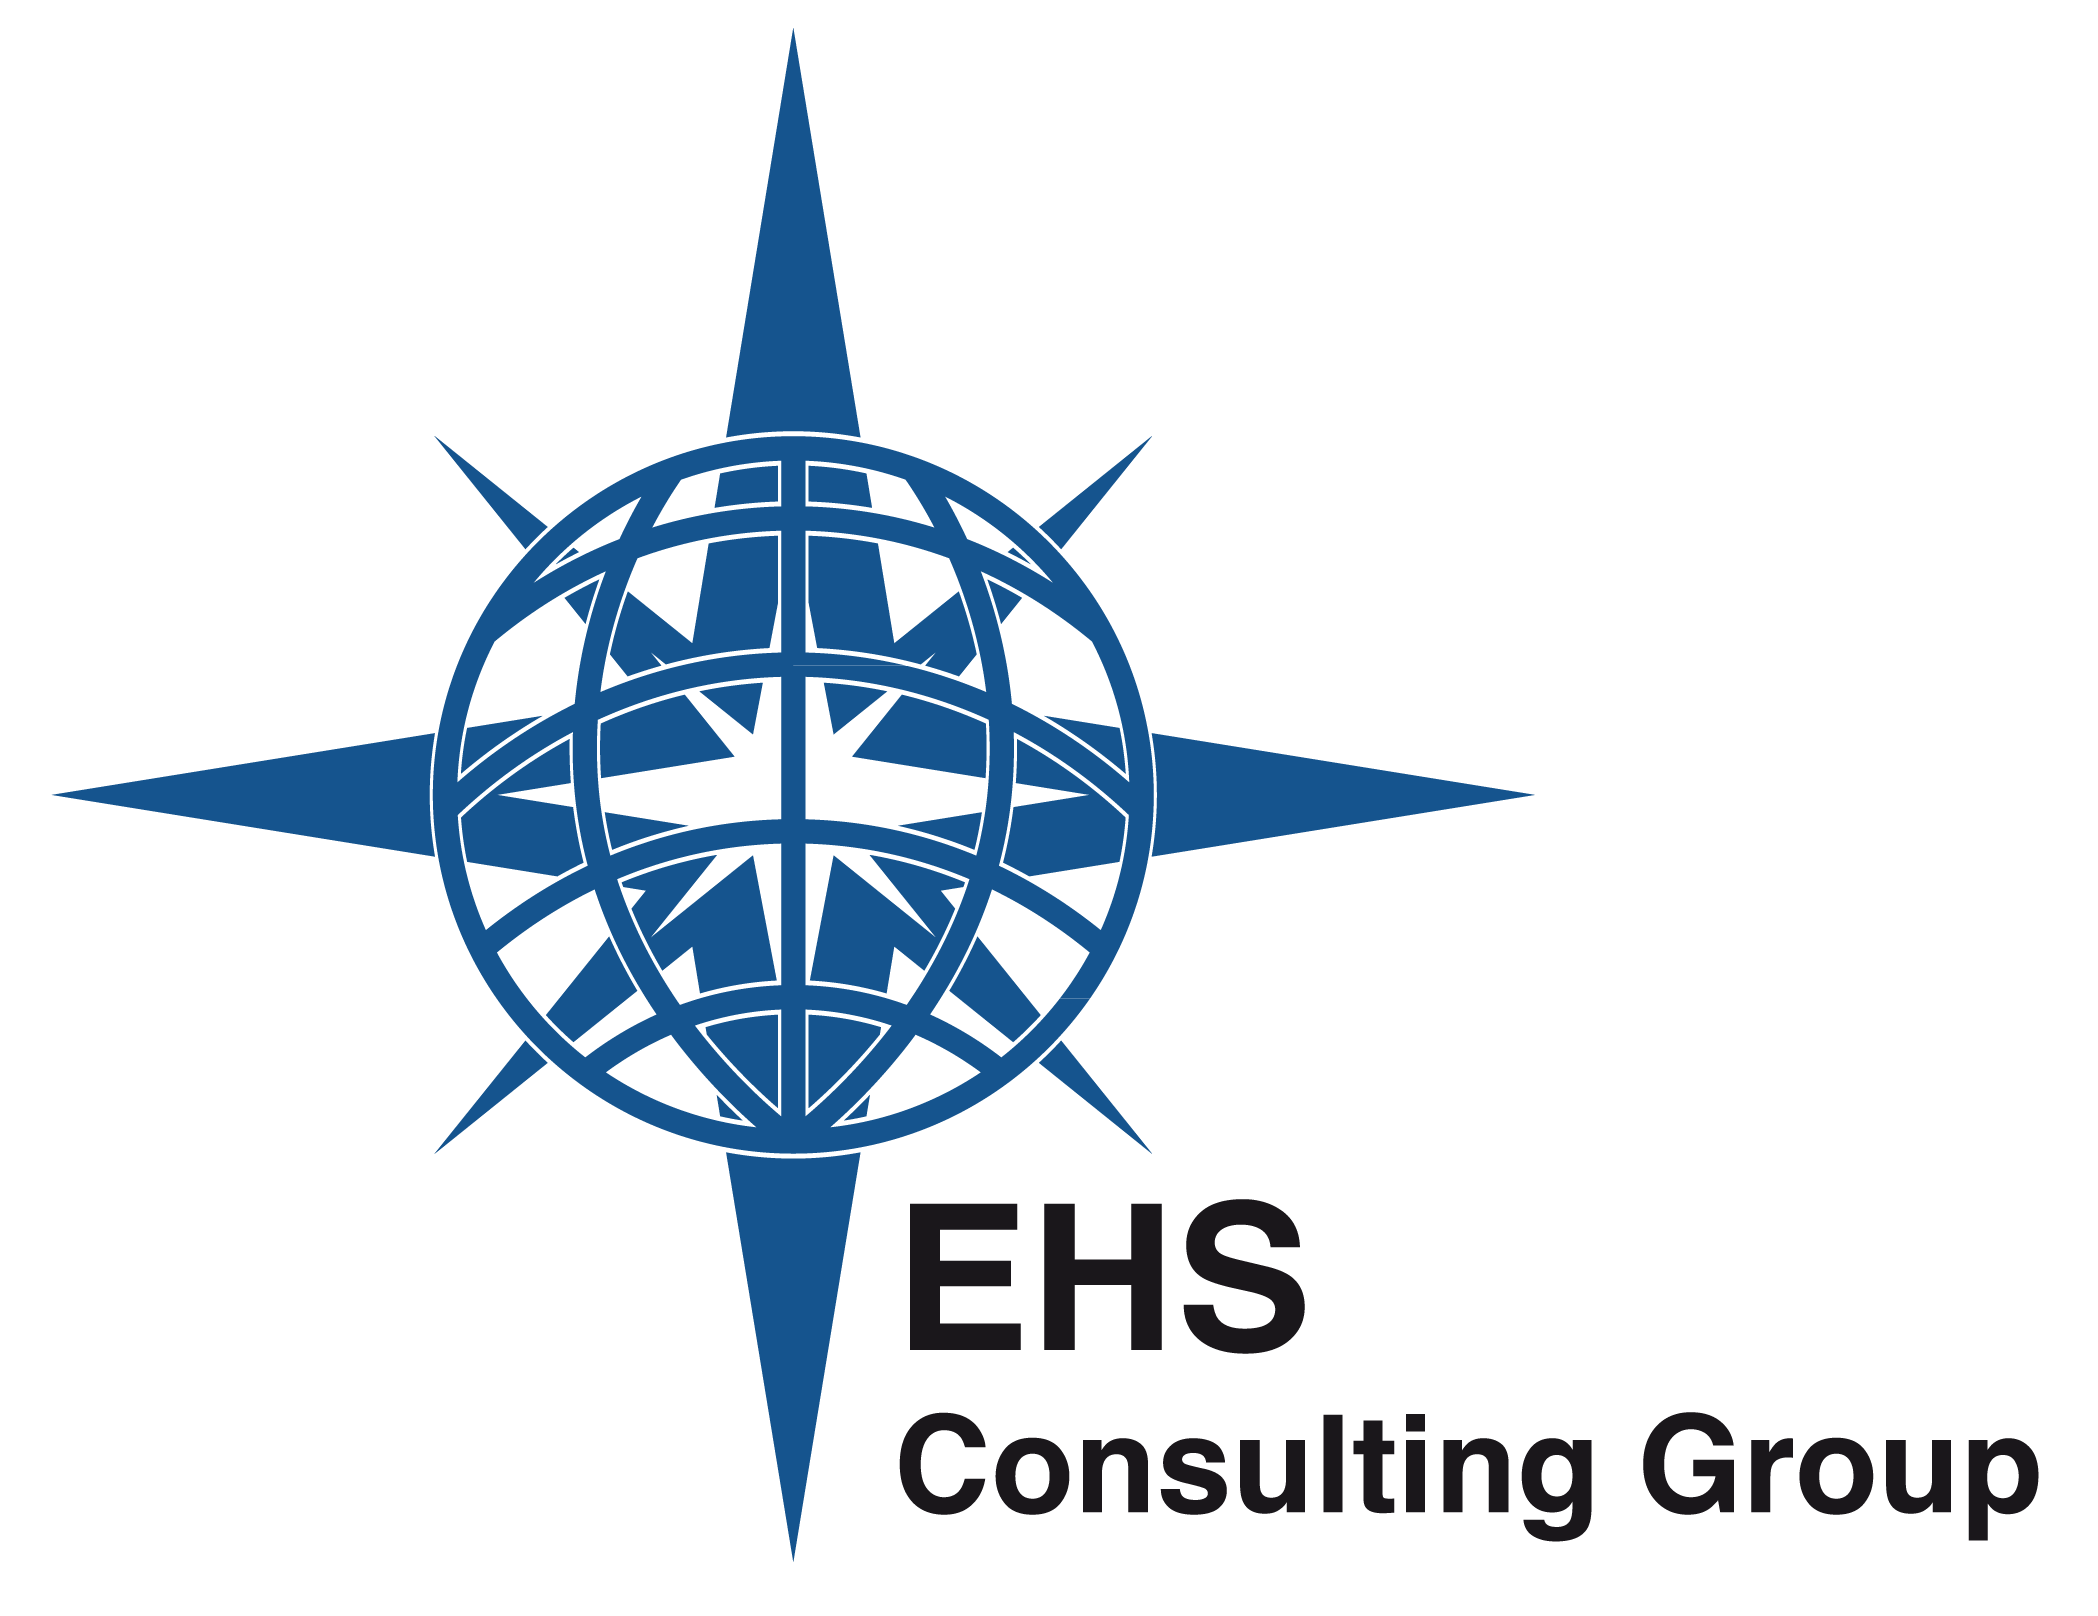 EHS Consulting Group